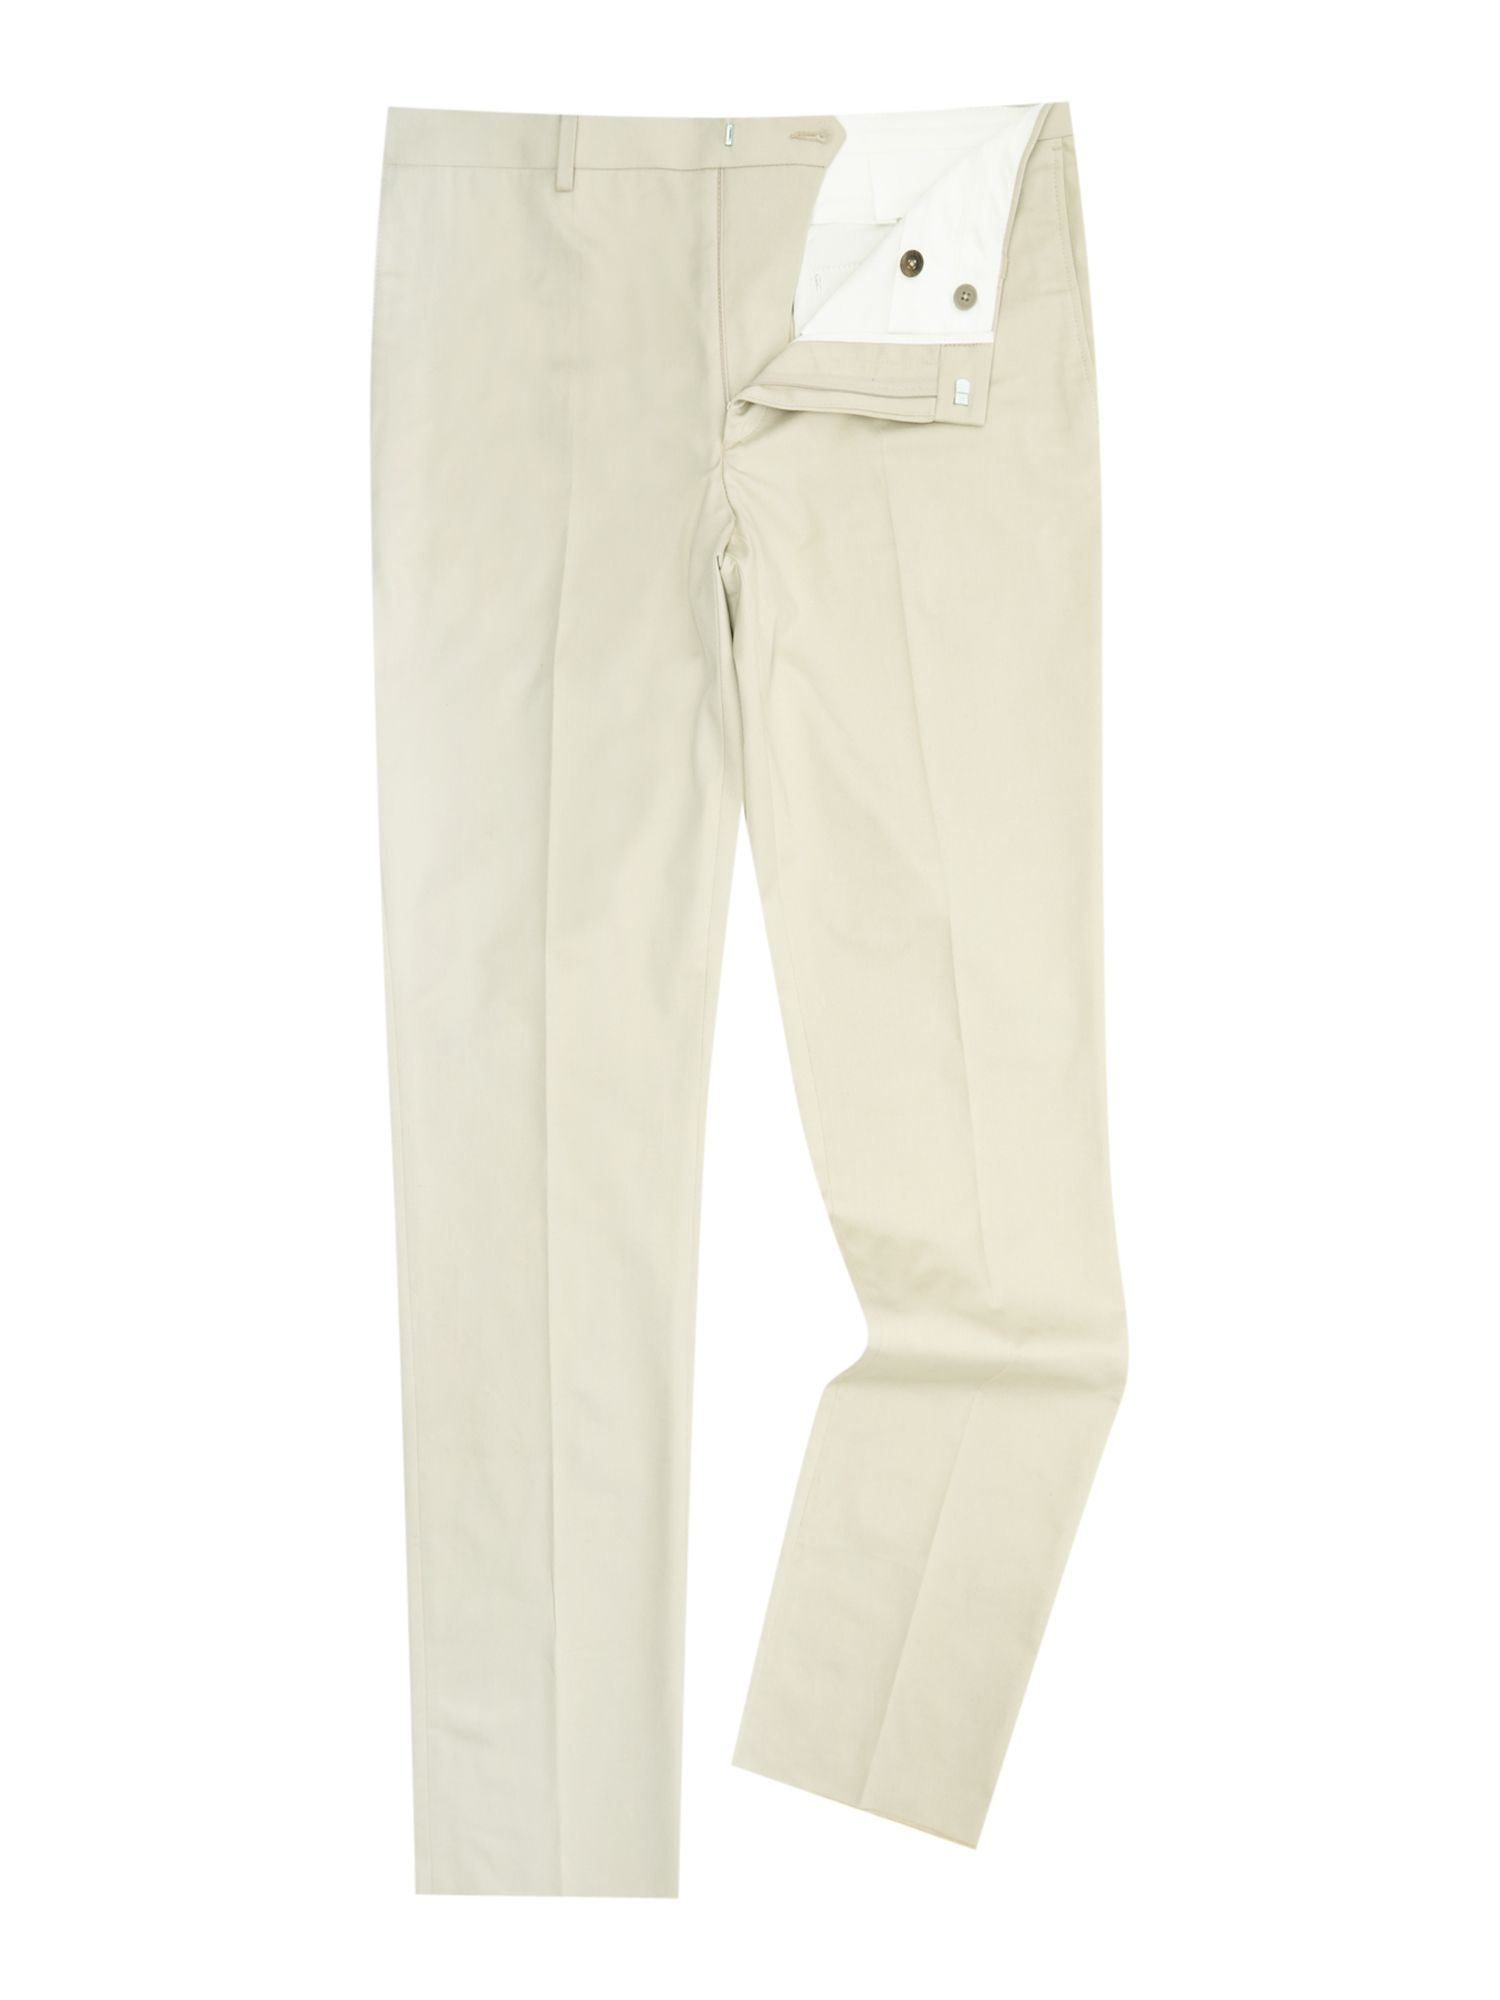 Chester Barrie Men's Chester Barrie Cotton Drill Trouser, Beige